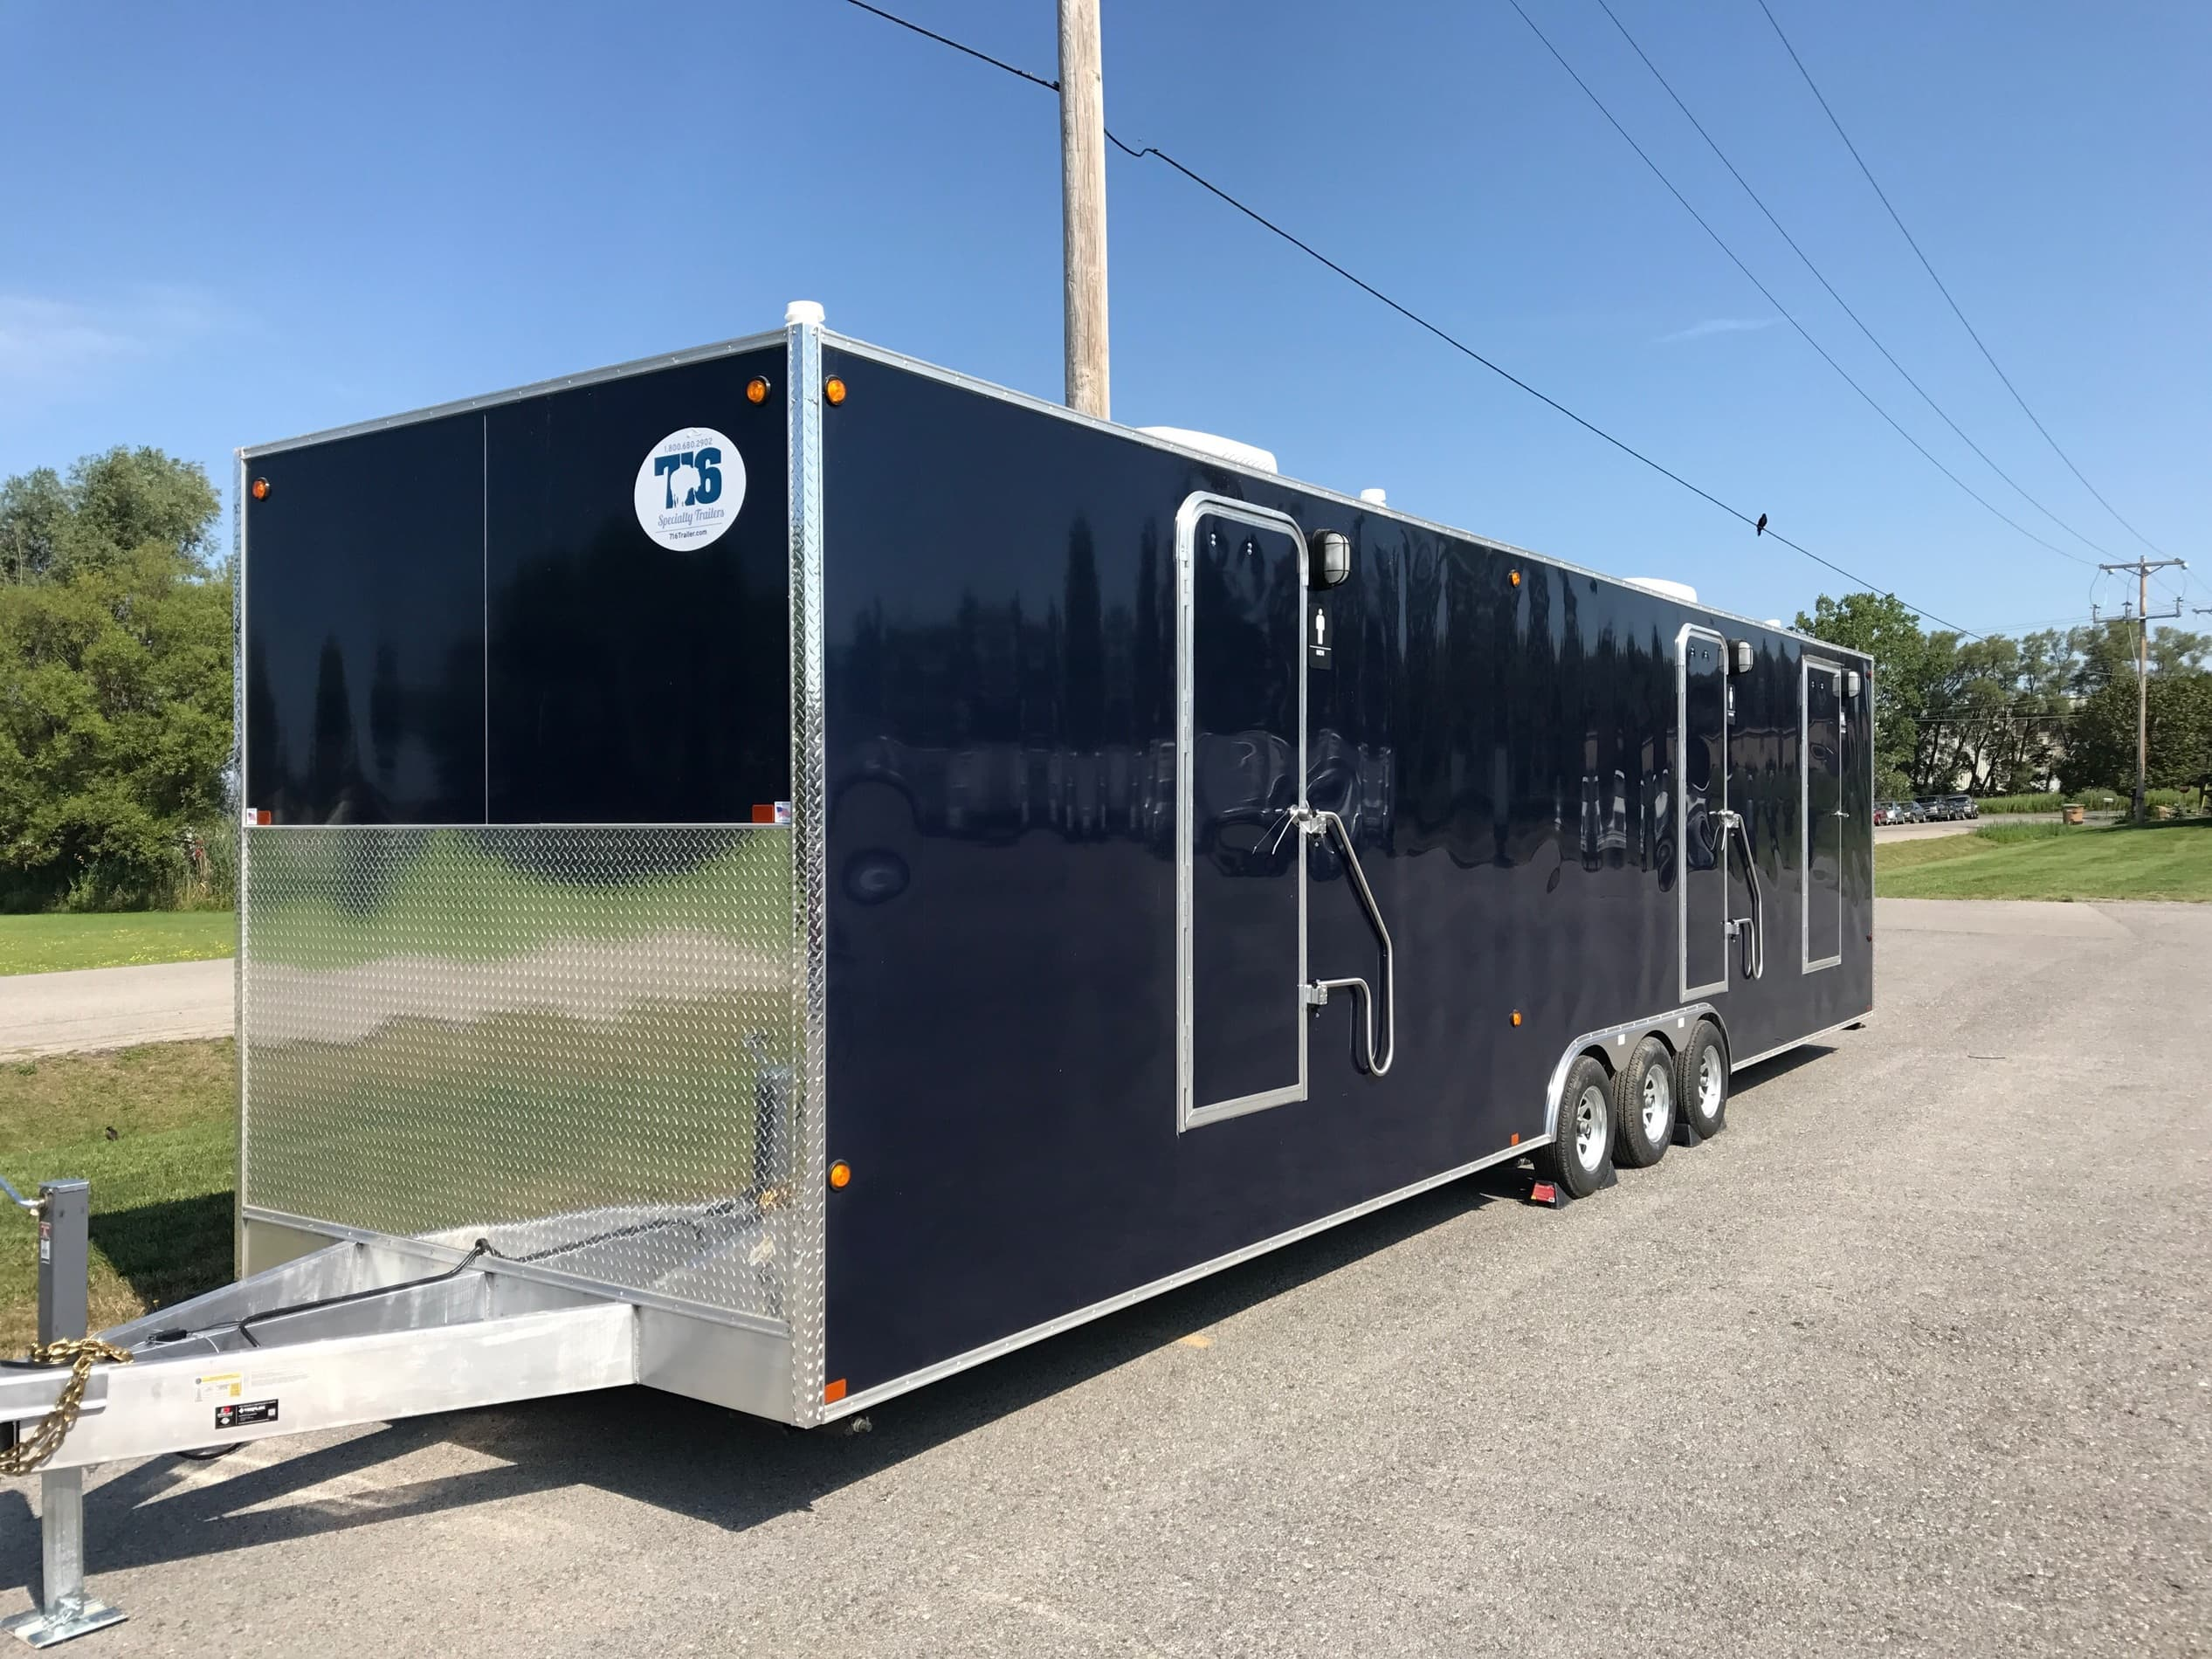 Trailer Categories  Commercial Grade Trailers  Portable Restroom. Portable Restroom Trailers For Sale   Portable Bathroom Trailers